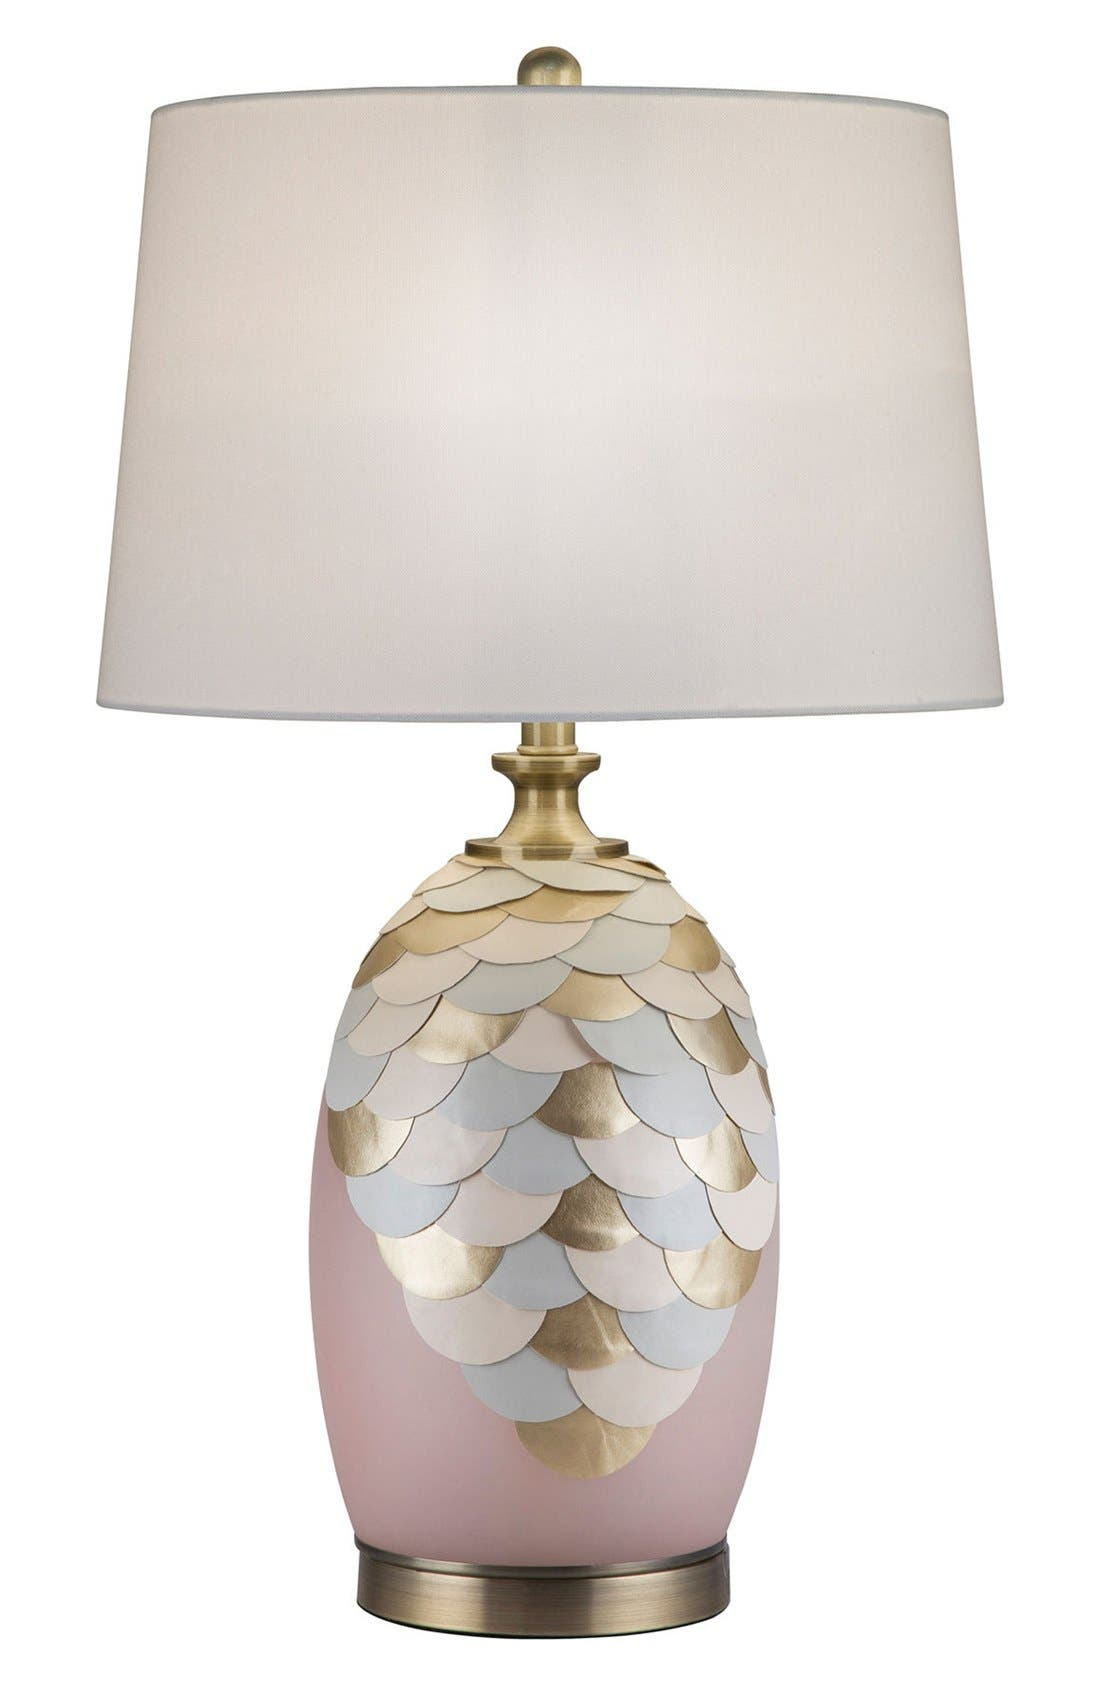 JAlexander Rose Quartz Table Lamp with Faux Leather & Brass Accents,                             Main thumbnail 1, color,                             Pink